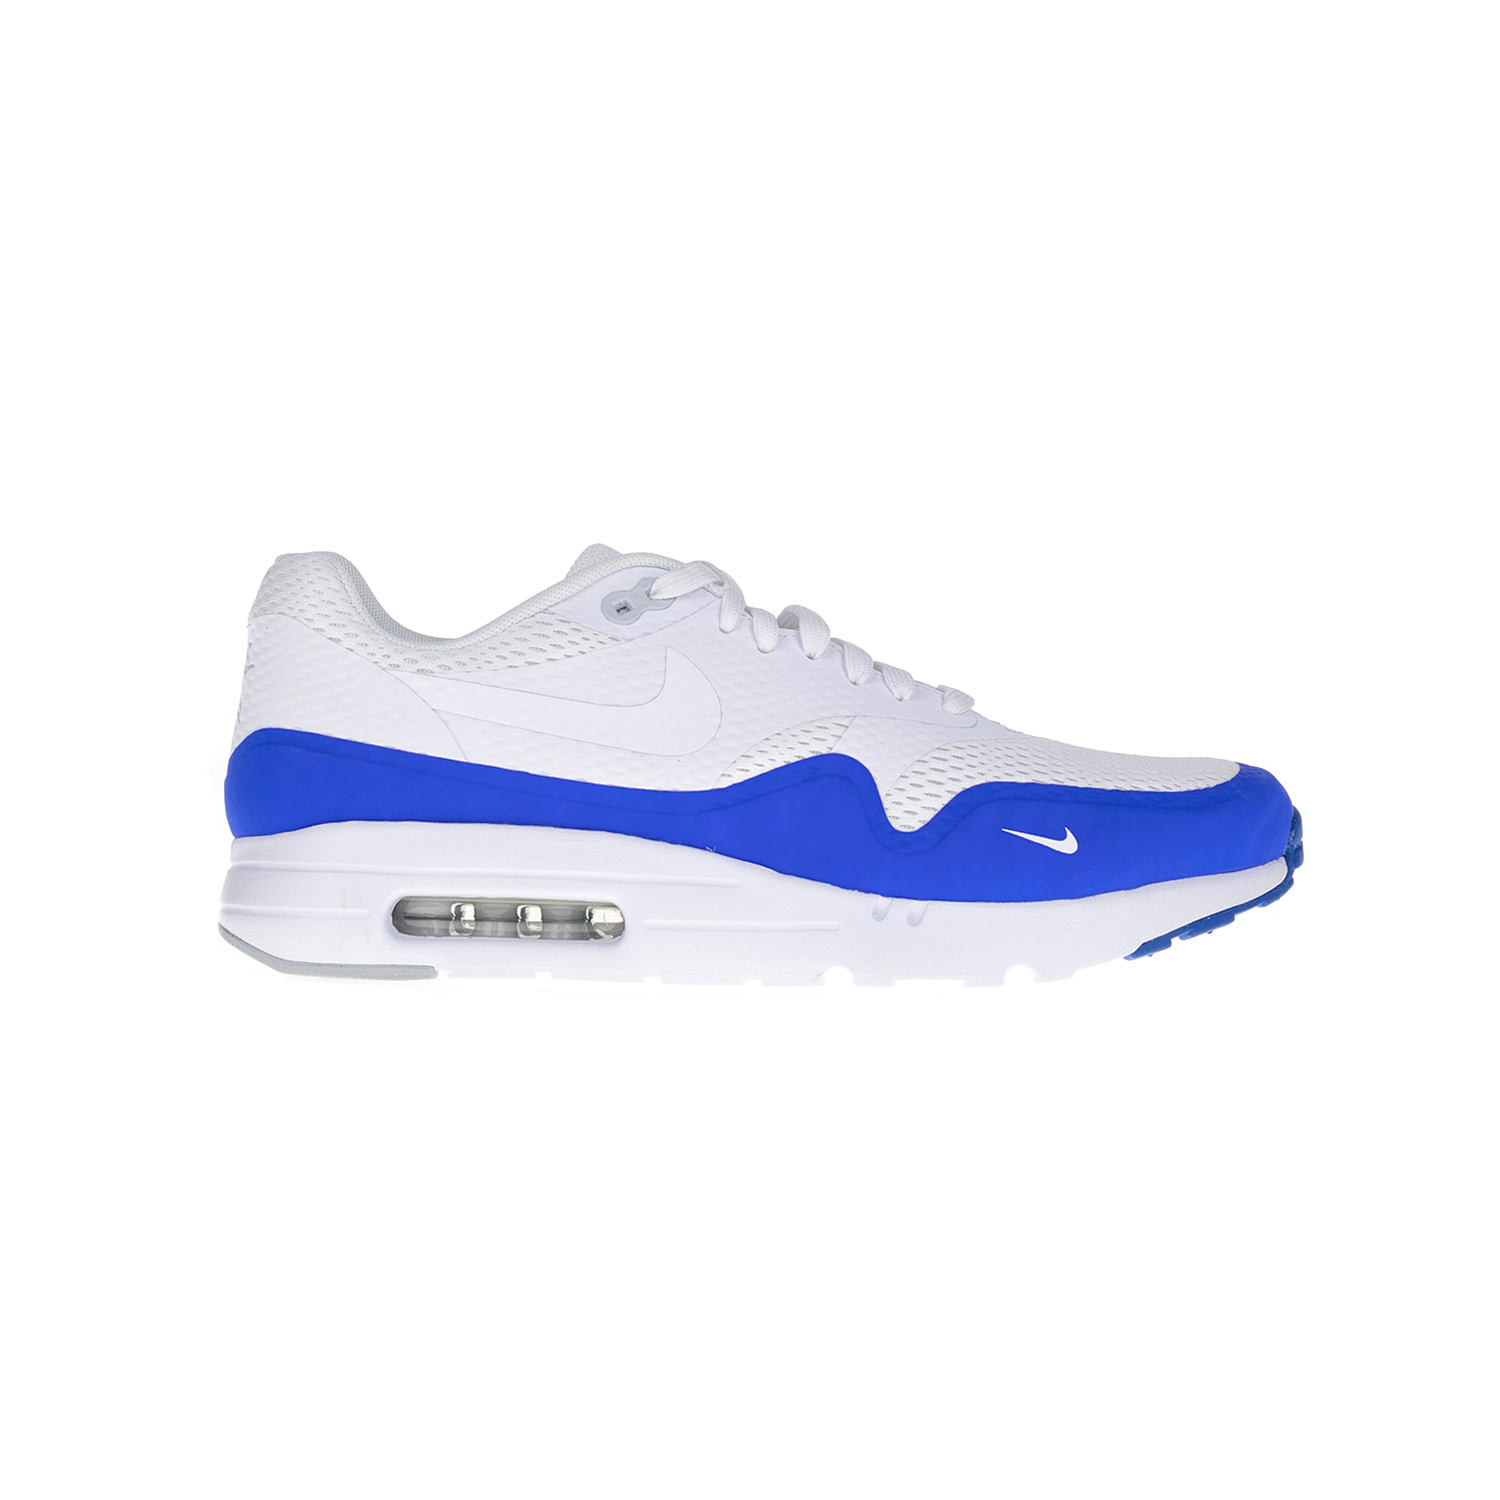 NIKE – Ανδρικά παπούτσια NIKE AIR MAX 1 ULTRA ESSENTIAL λευκά-μπλε